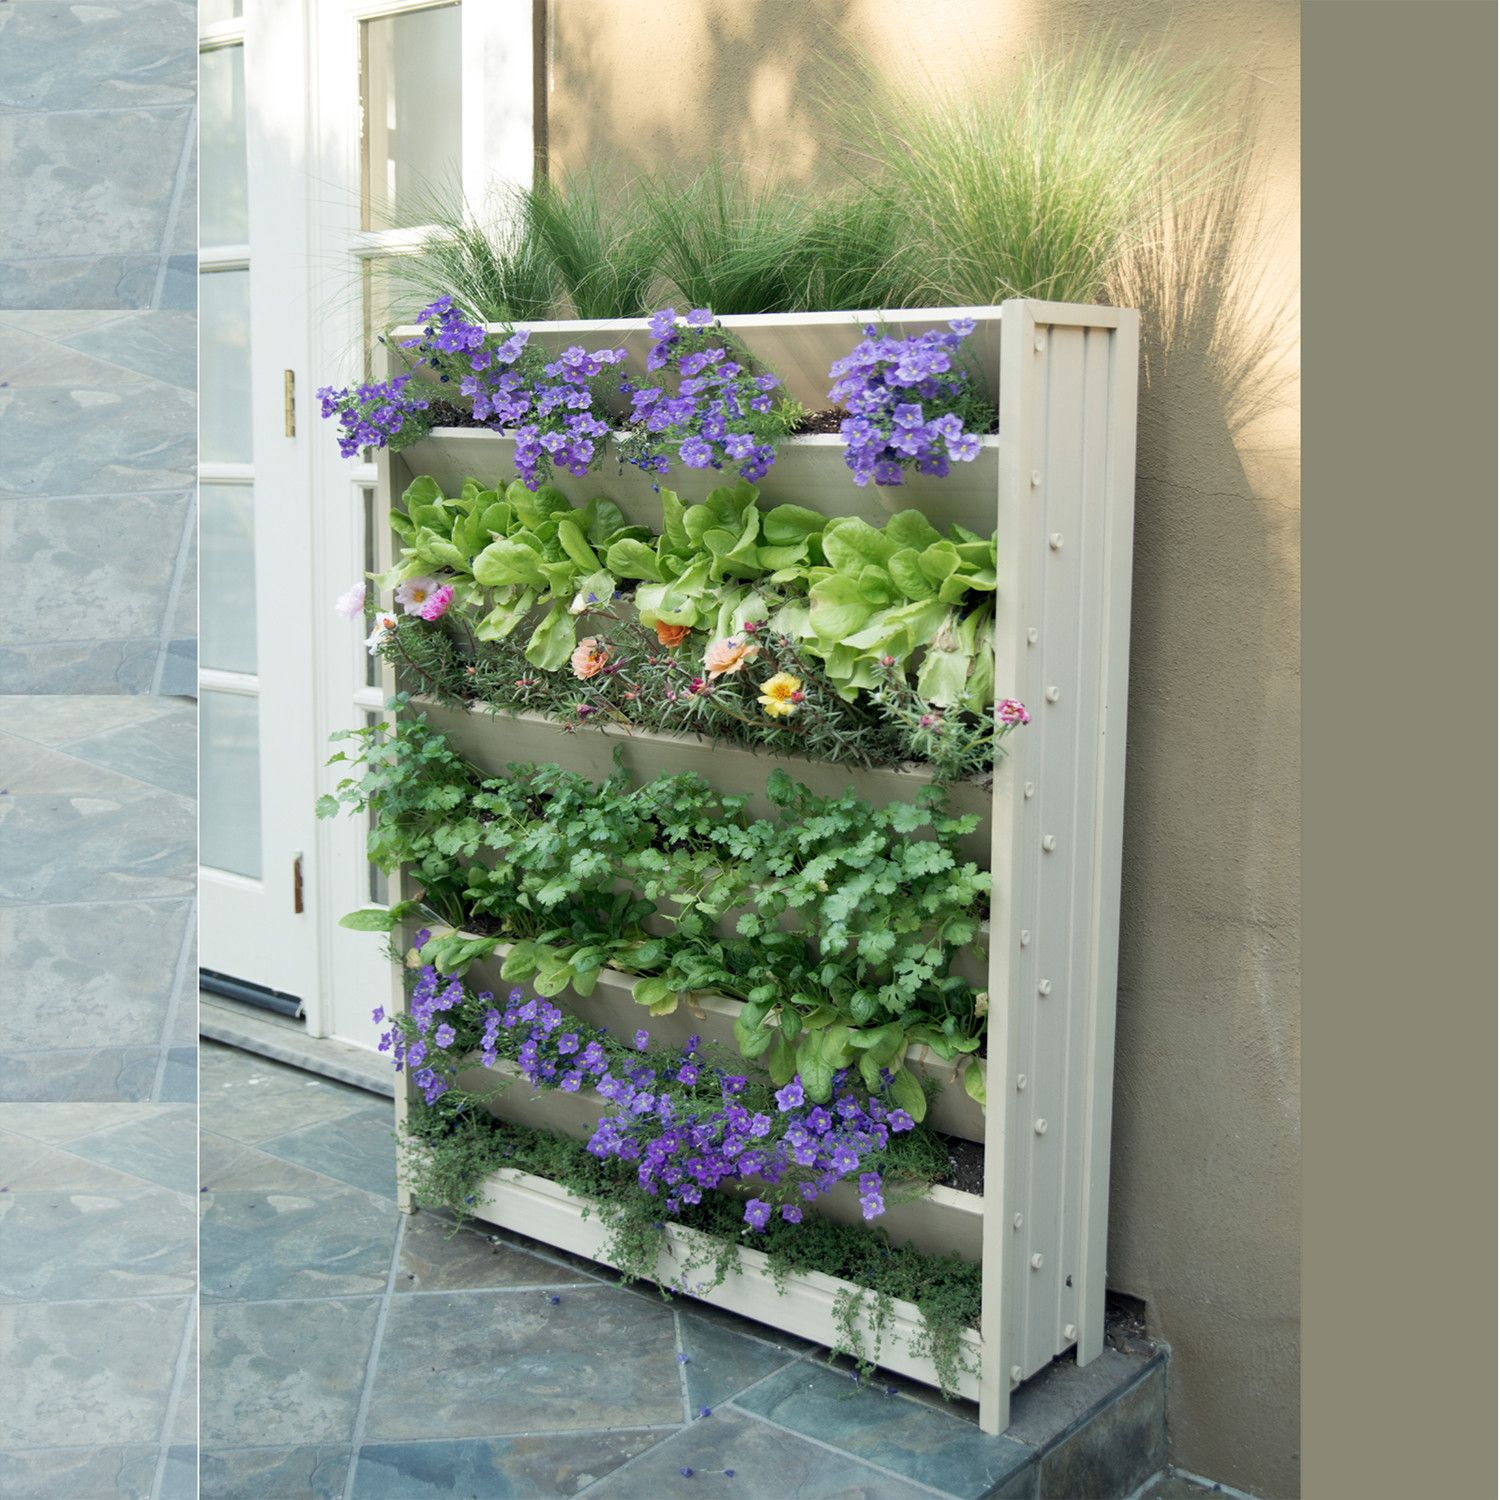 Features: -Indoor and outdoor use. -Vertical garden is designed to